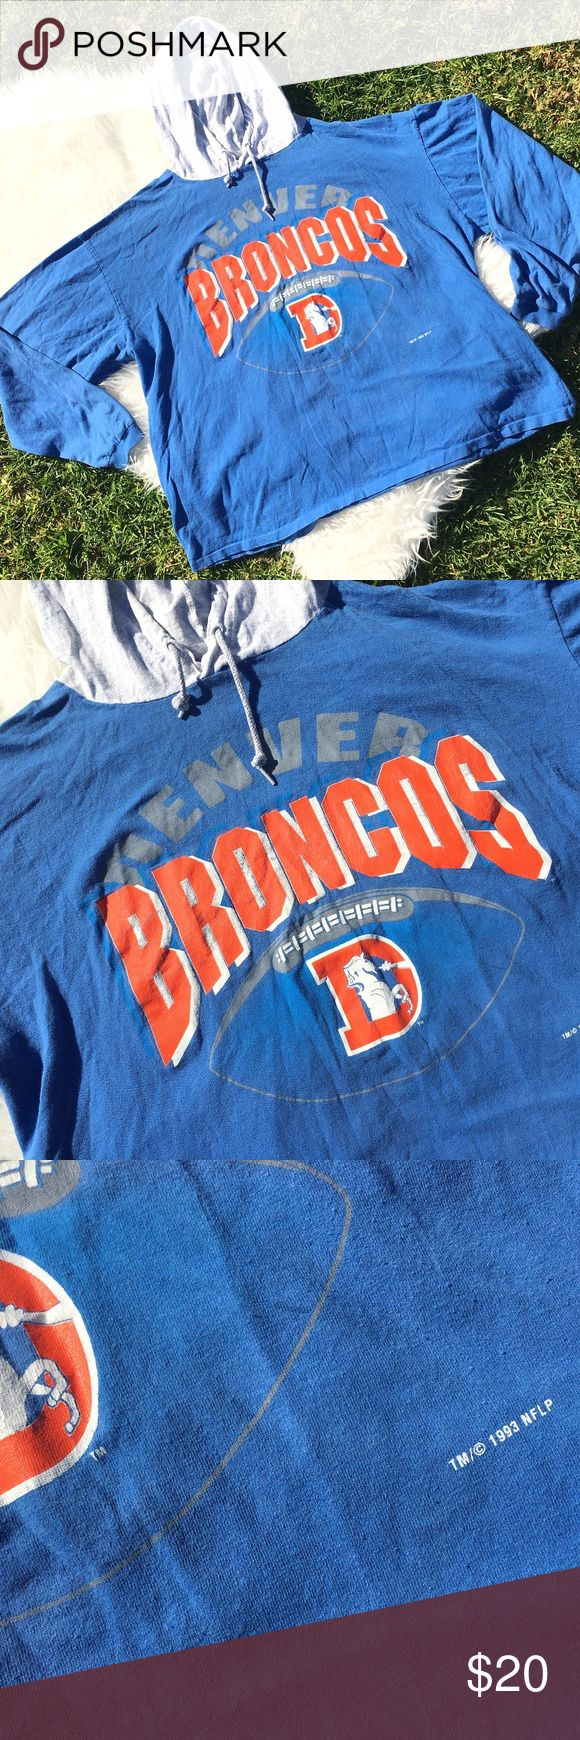 """Vintage Denver Broncos Shirt Hoodie XL 1993 Vintage Denver Broncos Blue T Shirt Hoodie Mens Size XL Made IN USA 1993 USA  Full Length:24.5"""" Pit to Pit:25"""" Sleeve Length:22"""" Artex Sweaters"""